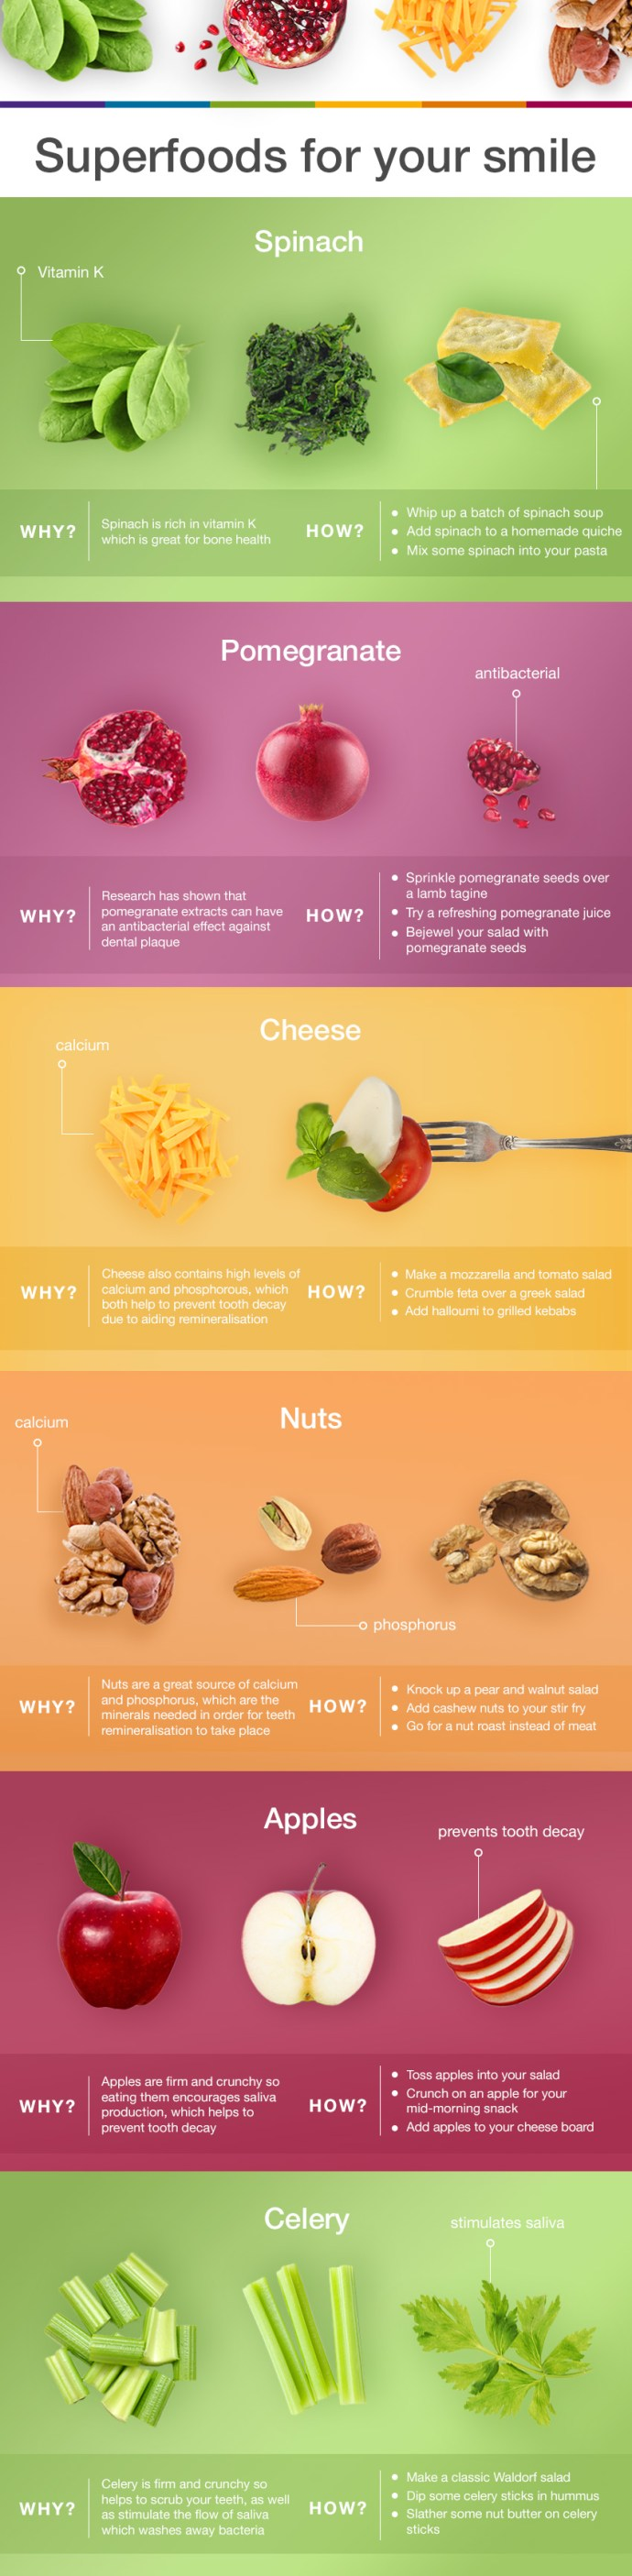 six_superfood_smile_infographic